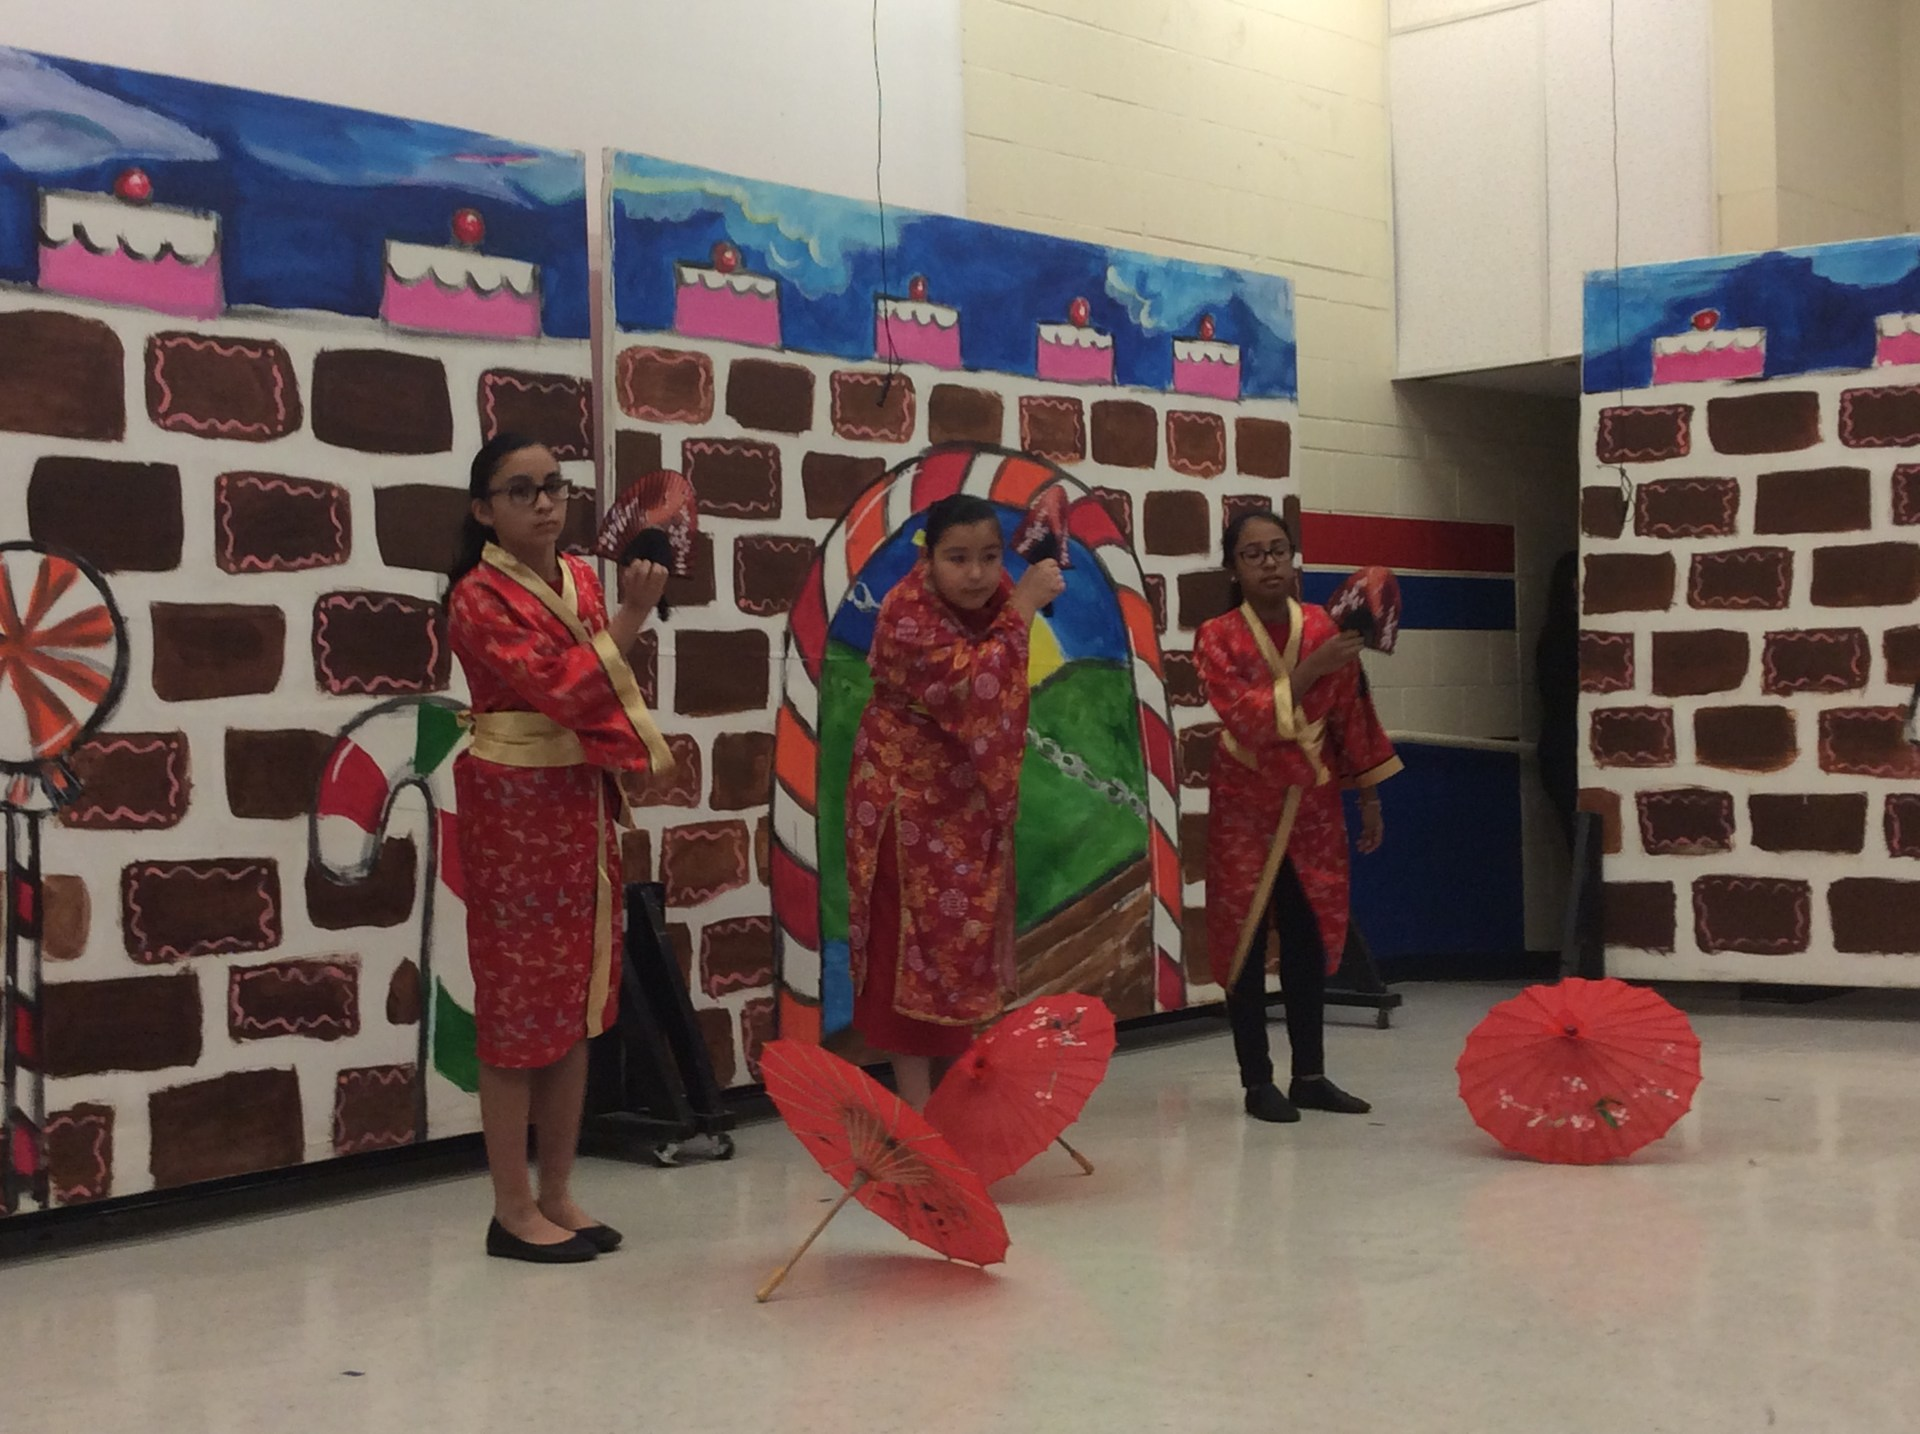 Asian dancers with umbrellas on stage.